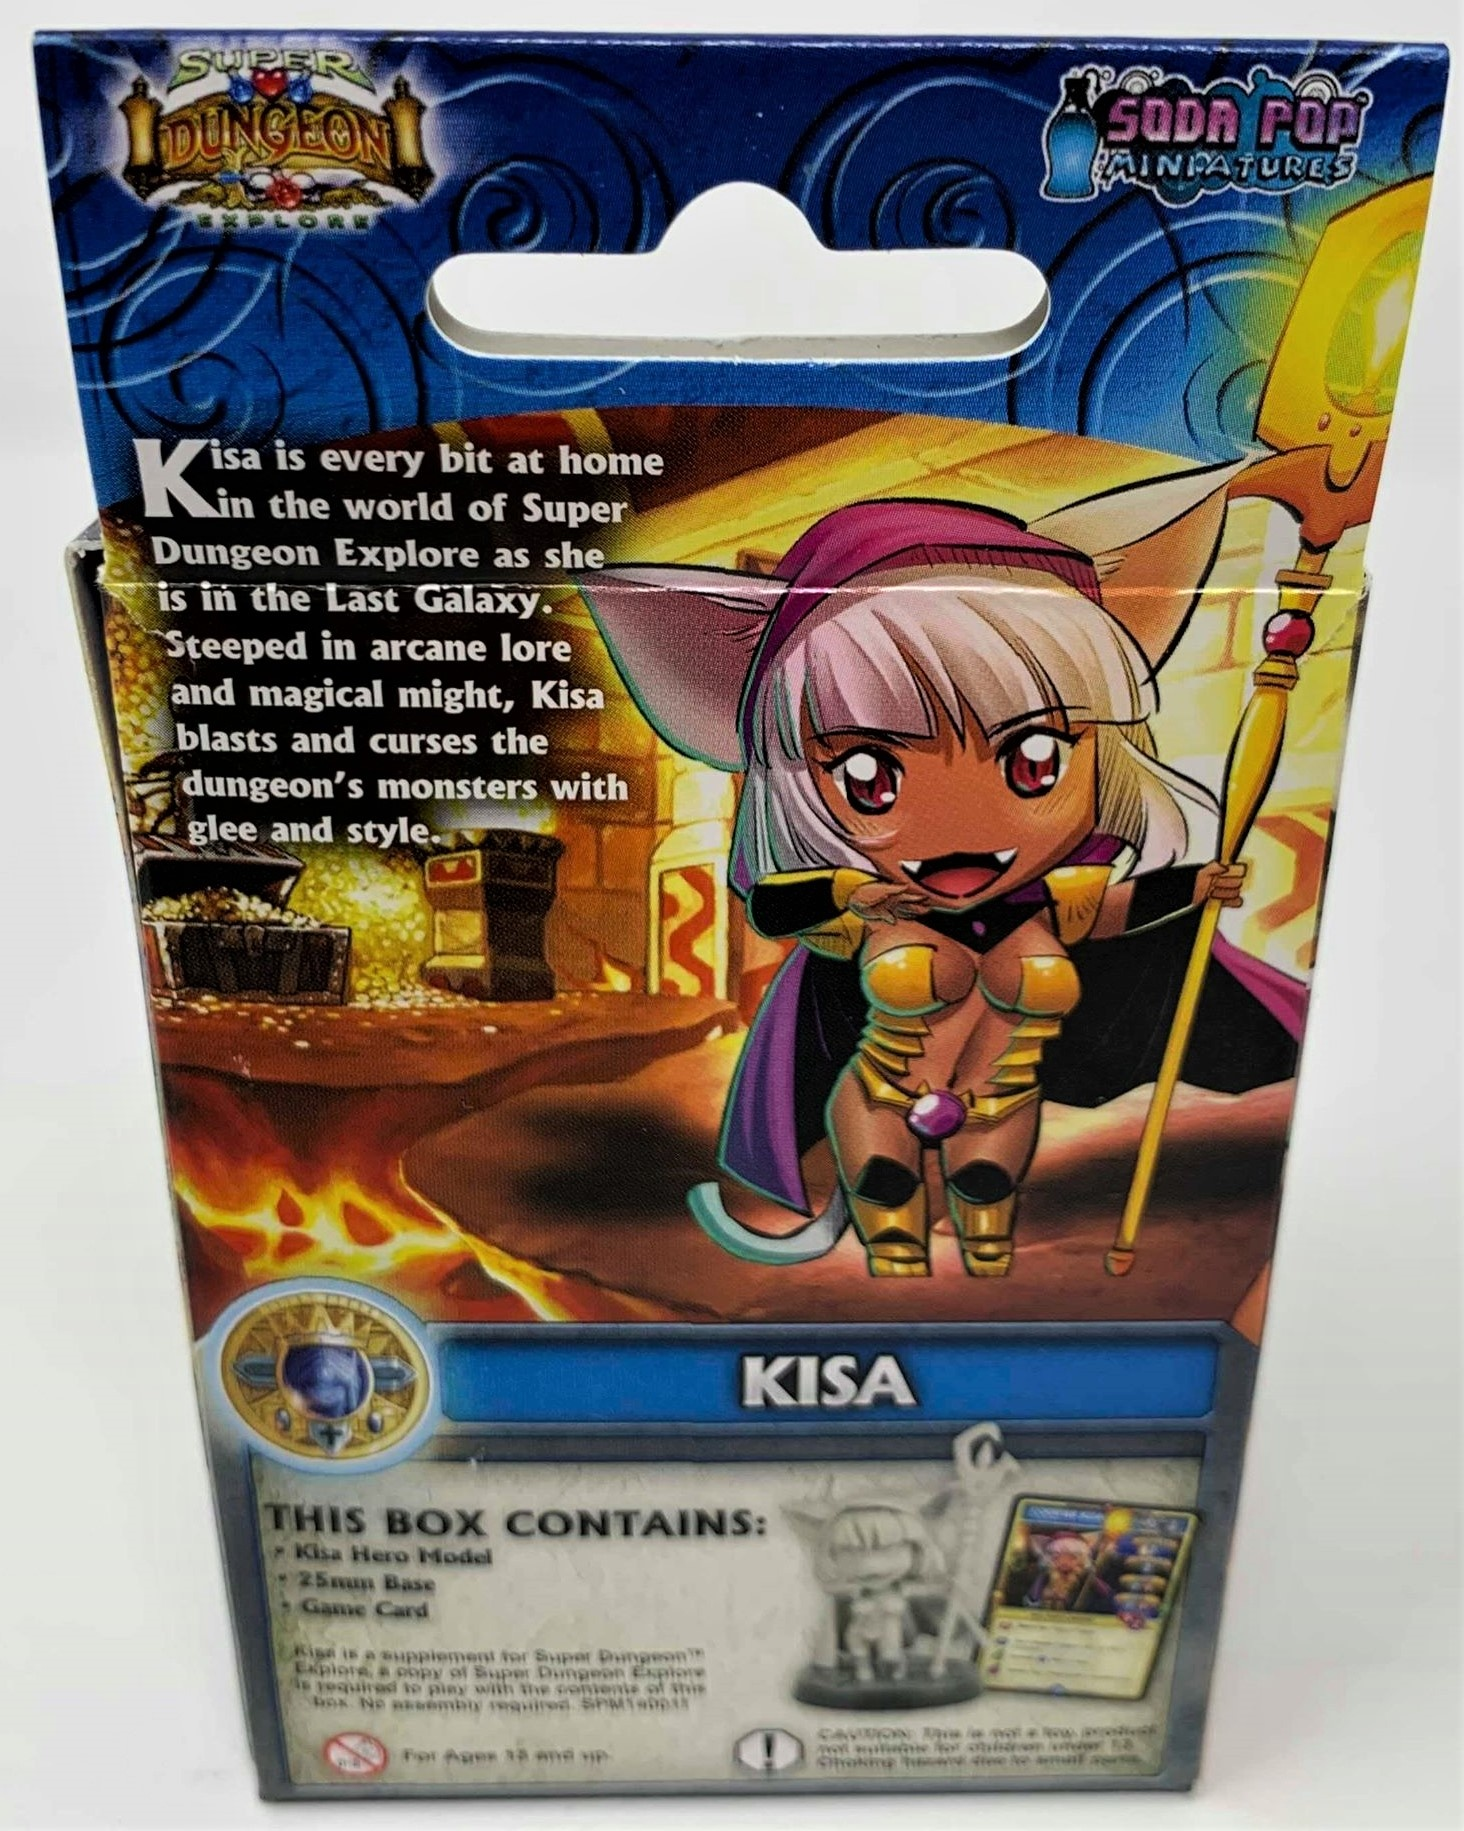 Super Dungeon Explore: Kisa